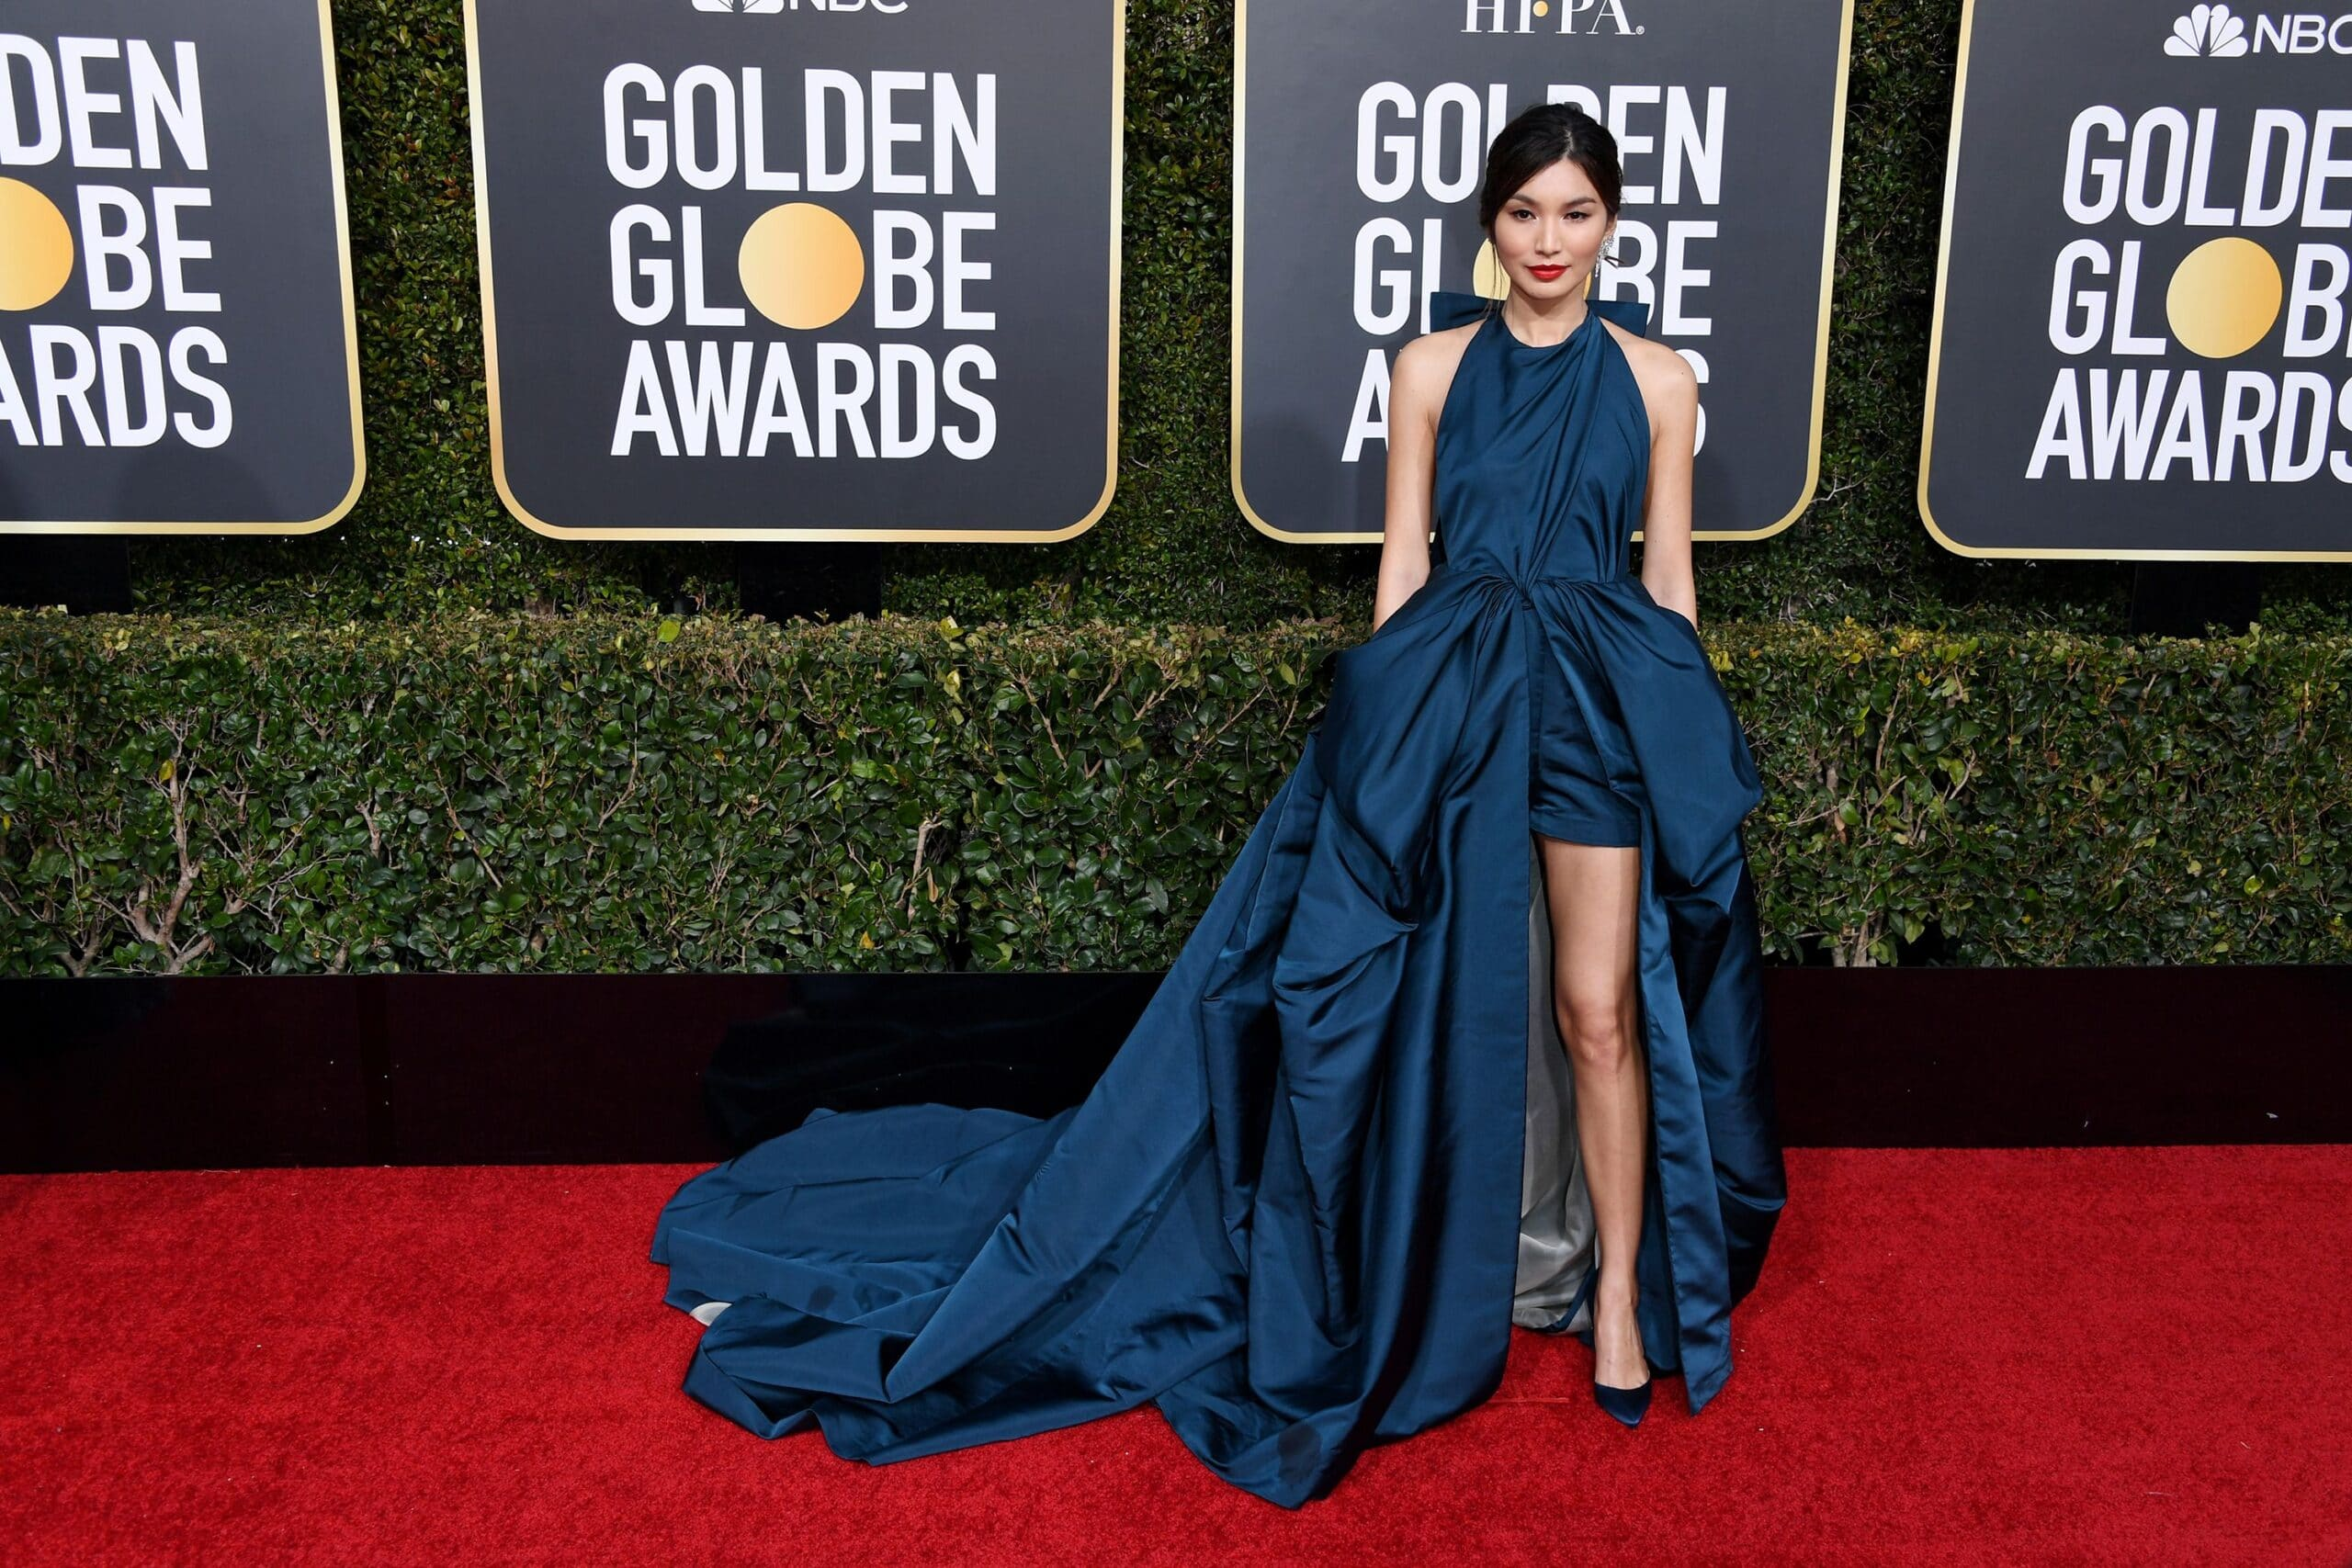 Golden Globes: Top 10 Best Dressed of All Time 11